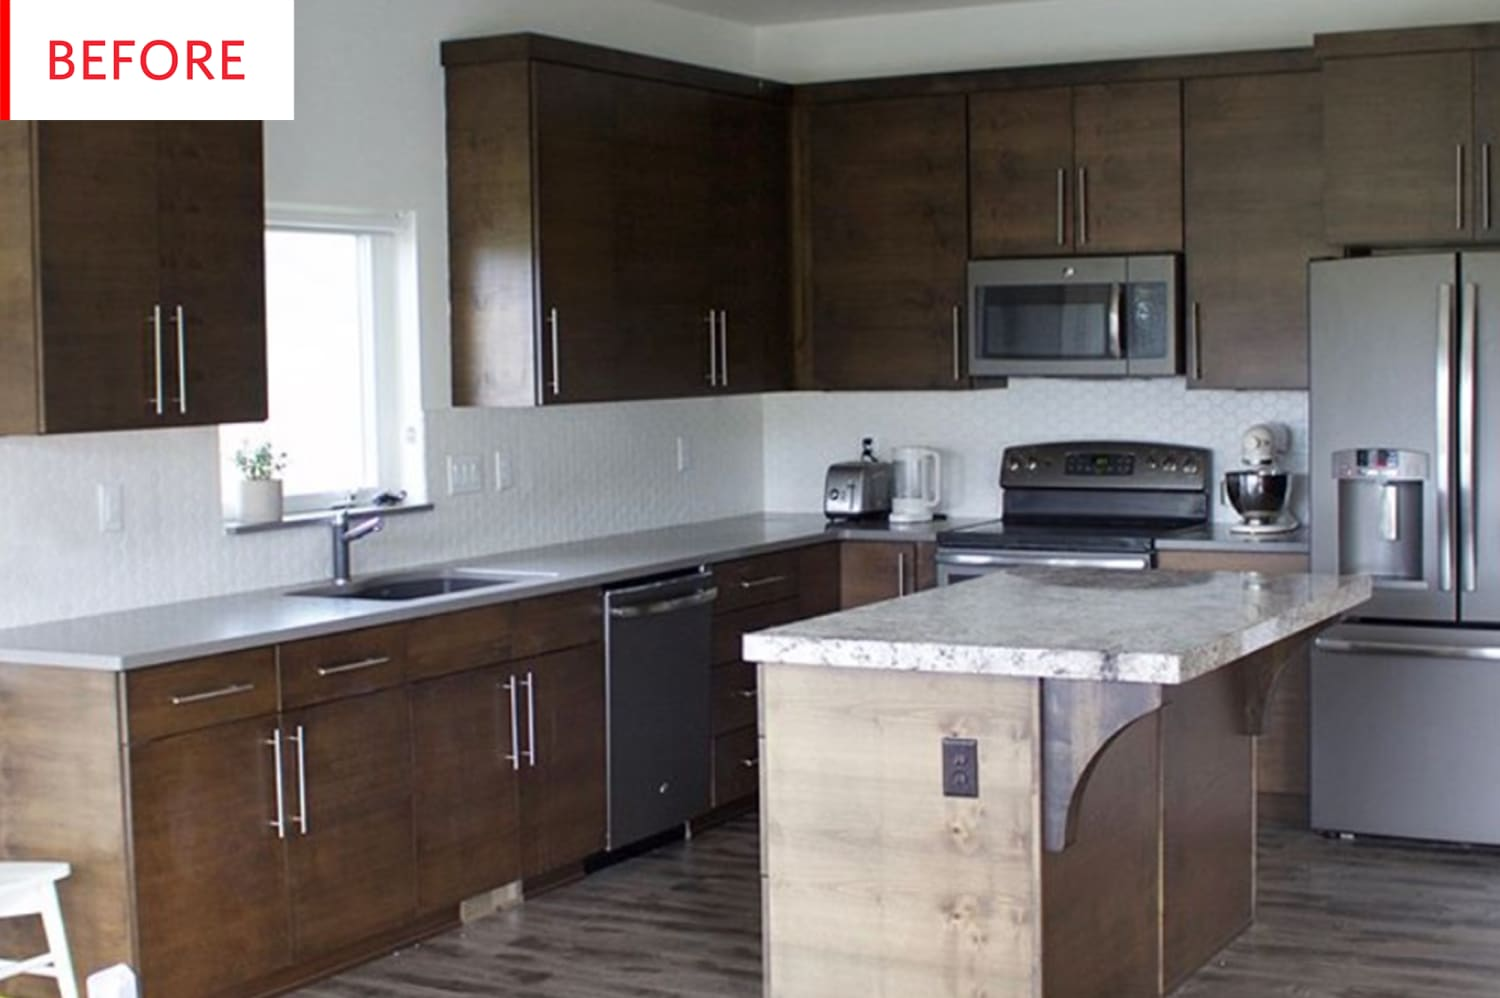 Before and After: We Could Not Have Predicted This Kitchen's Paint Job